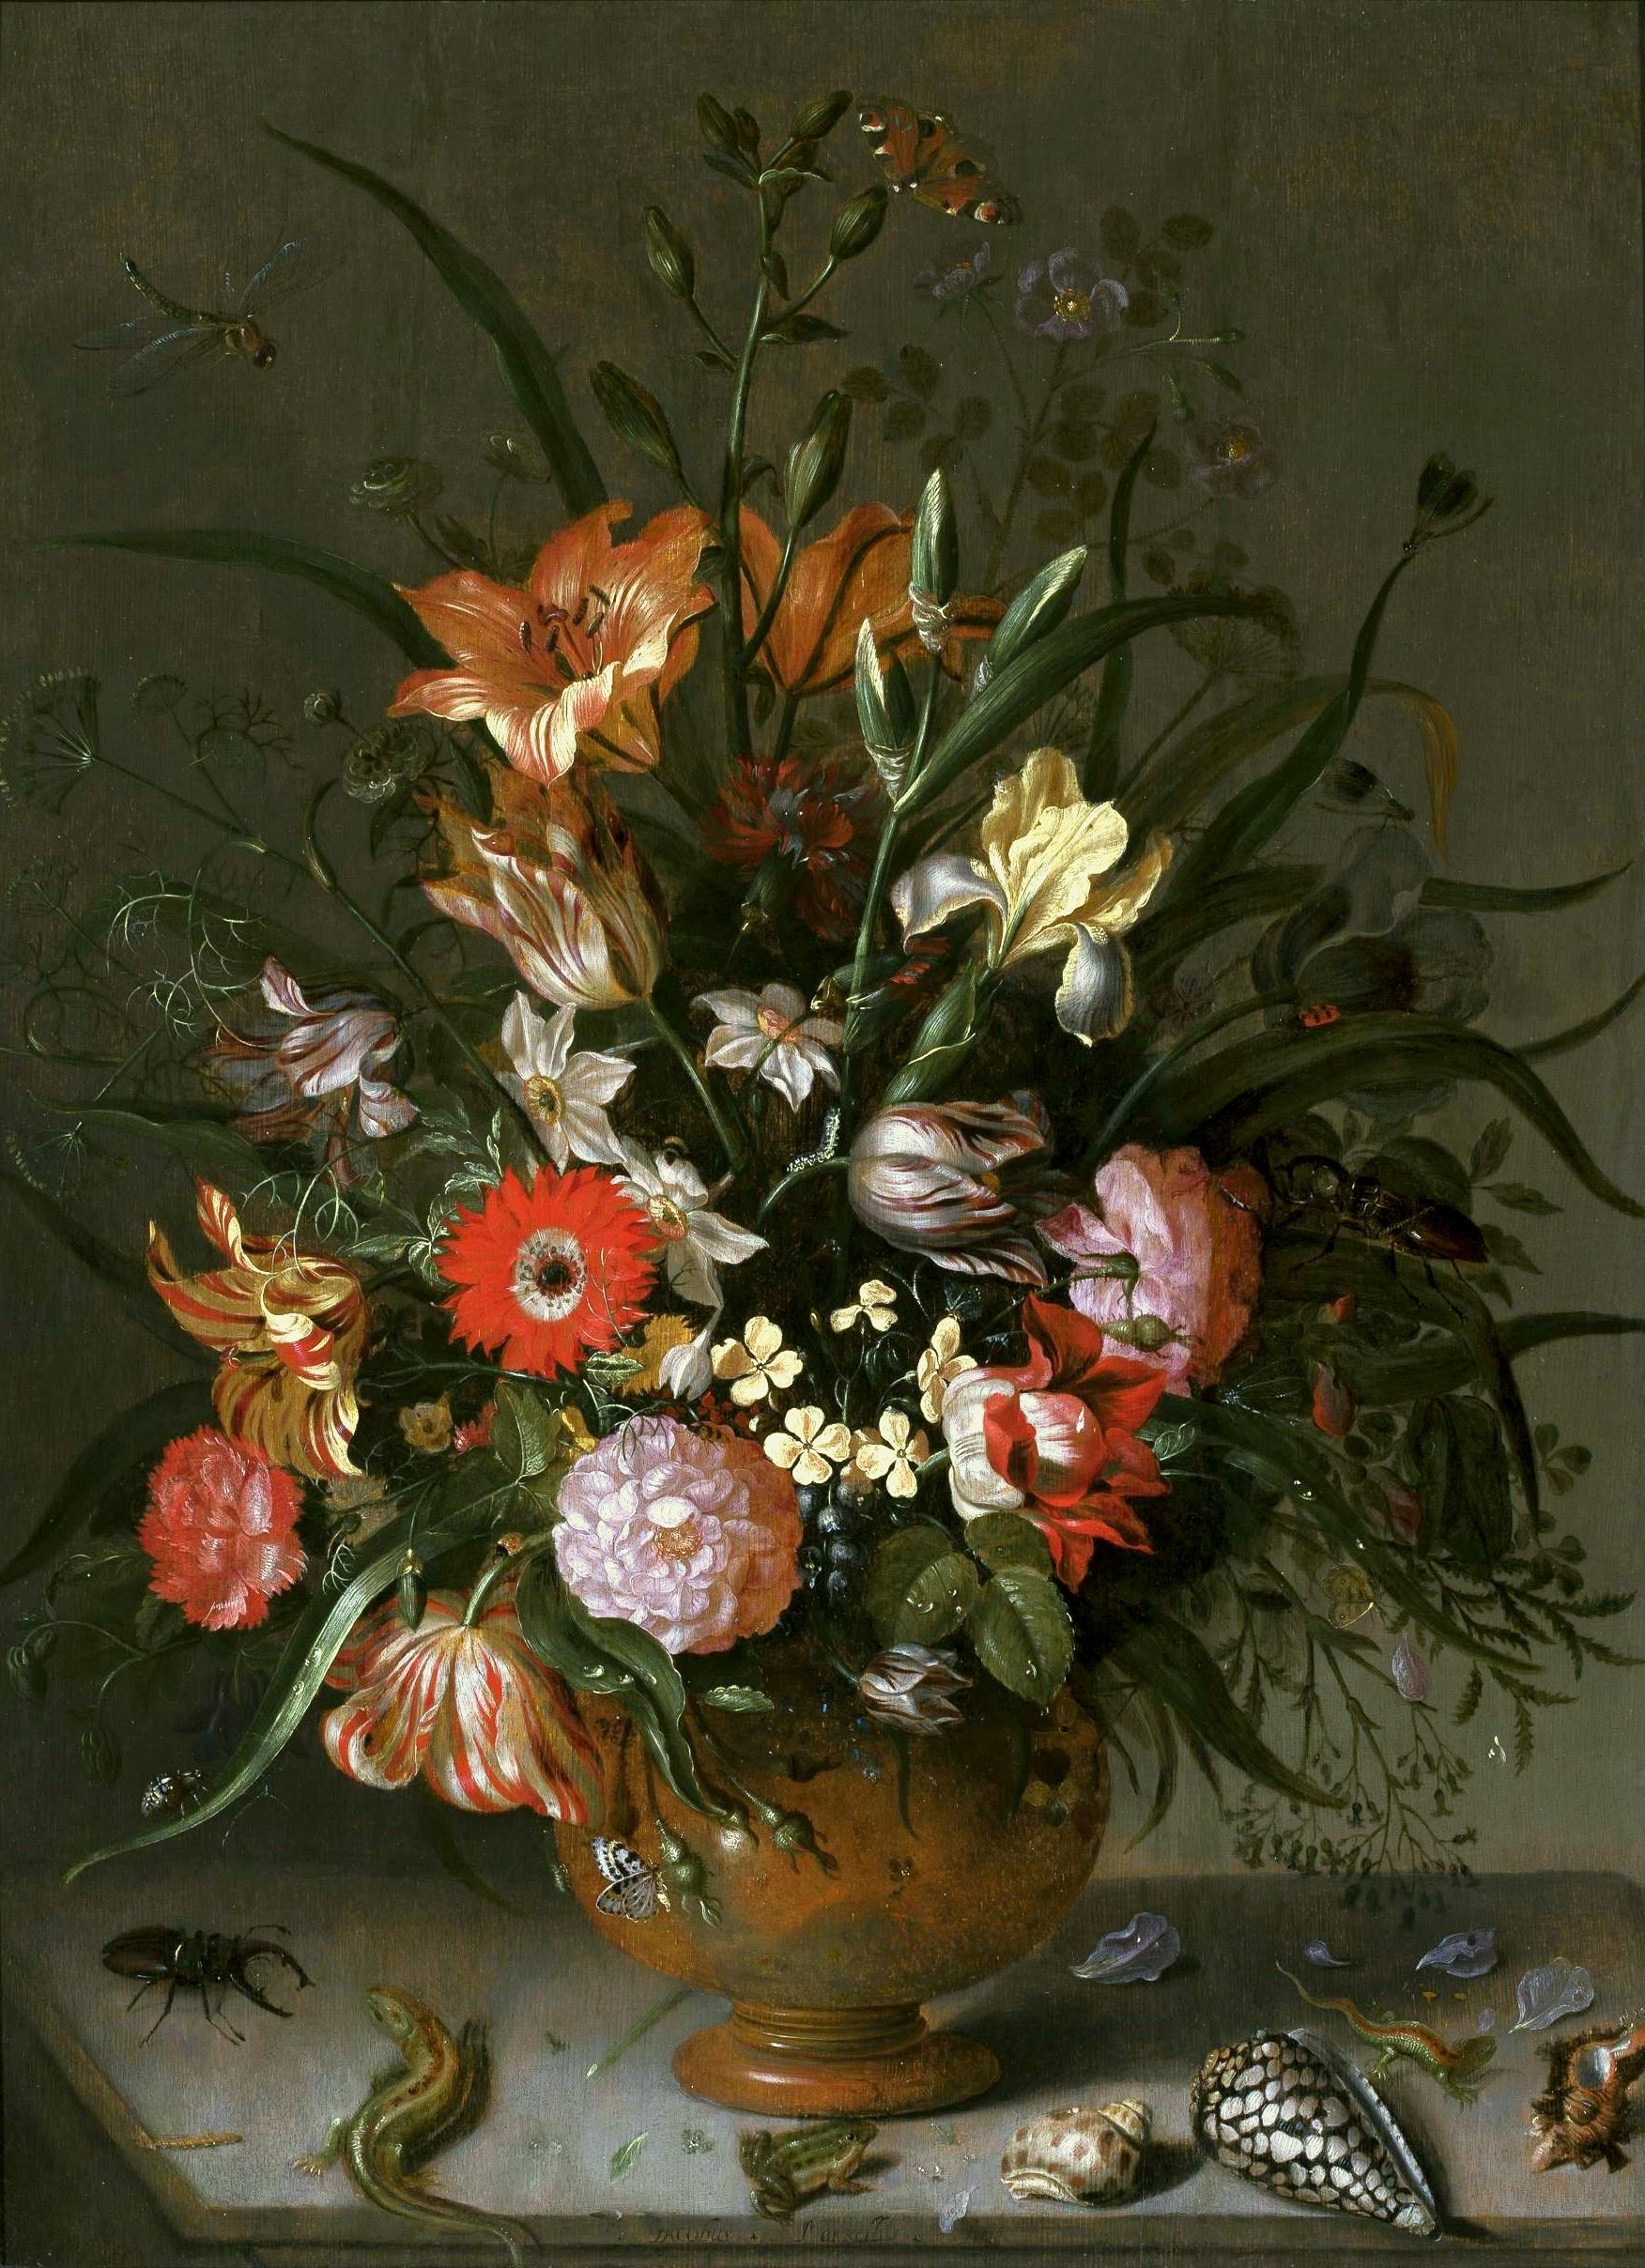 Flowers in a vase by Jacob Marrel, 1634 (PD-art/old), Muzeum Narodowe w Warszawie (MNW